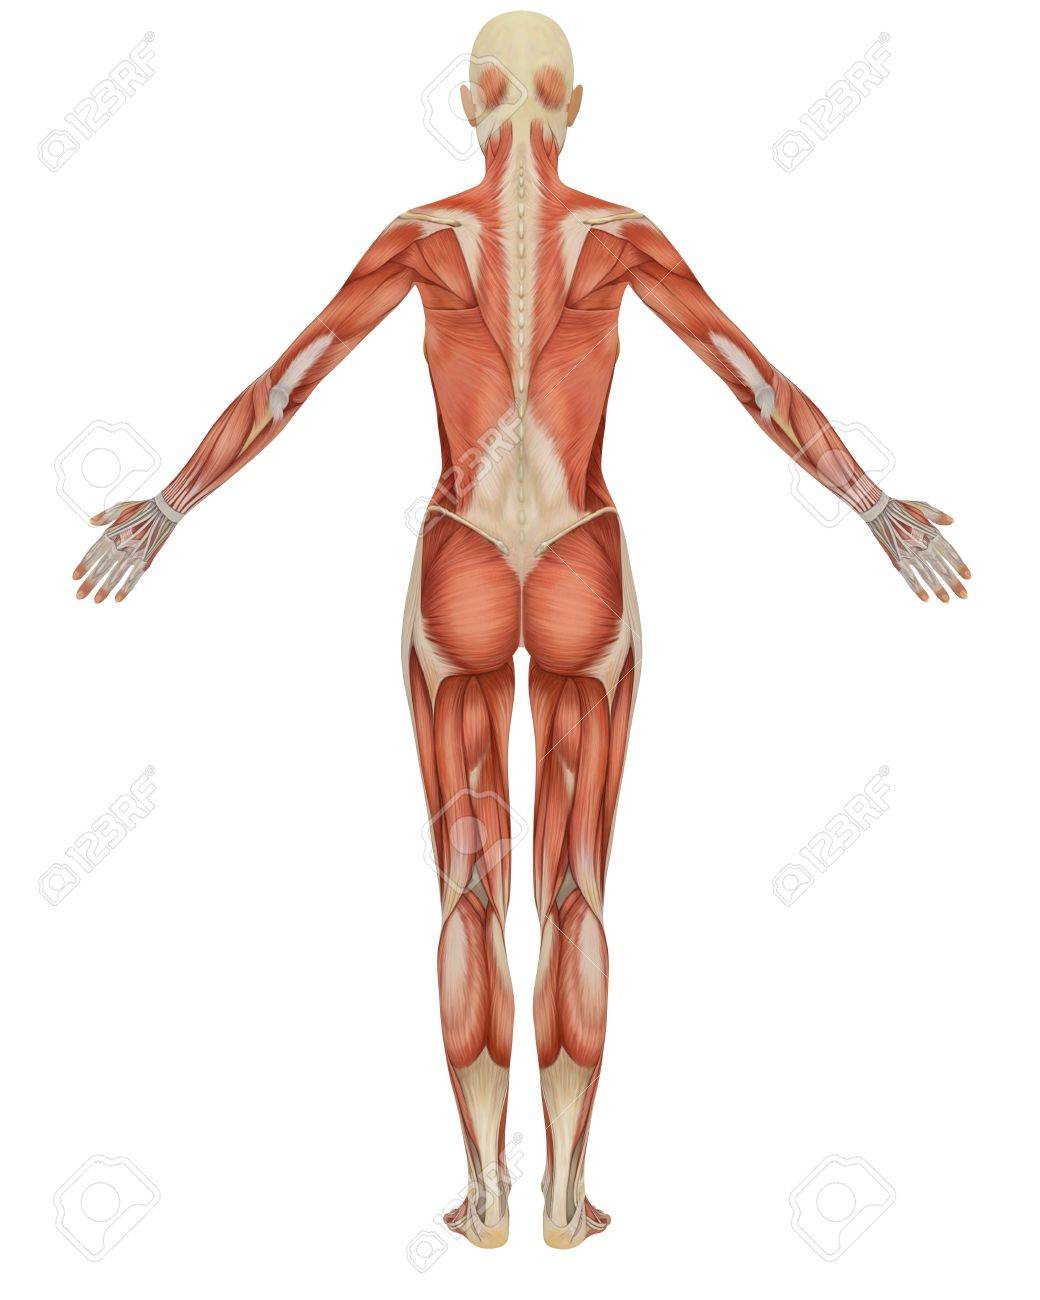 Rear View Of The Female Muscular Anatomy Very Educational Stock